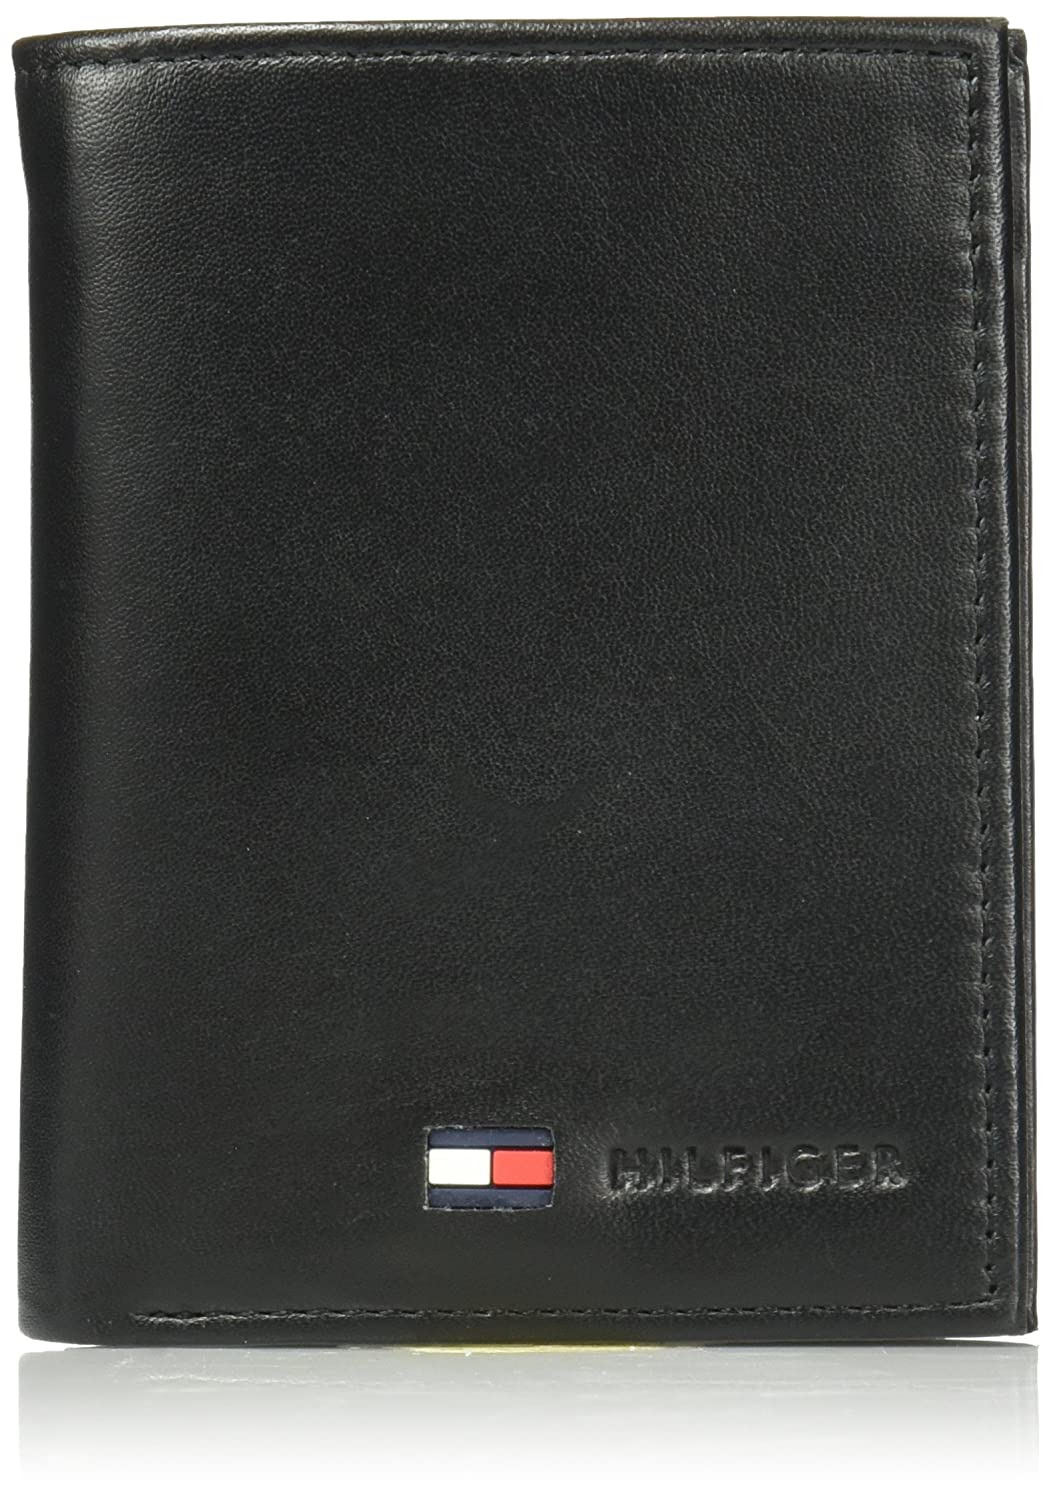 Mens Wallet with Id Window On Outside Unique tommy Hilfiger Trifold for Men Wallet with Leather Credit Card Pockets and Id Window